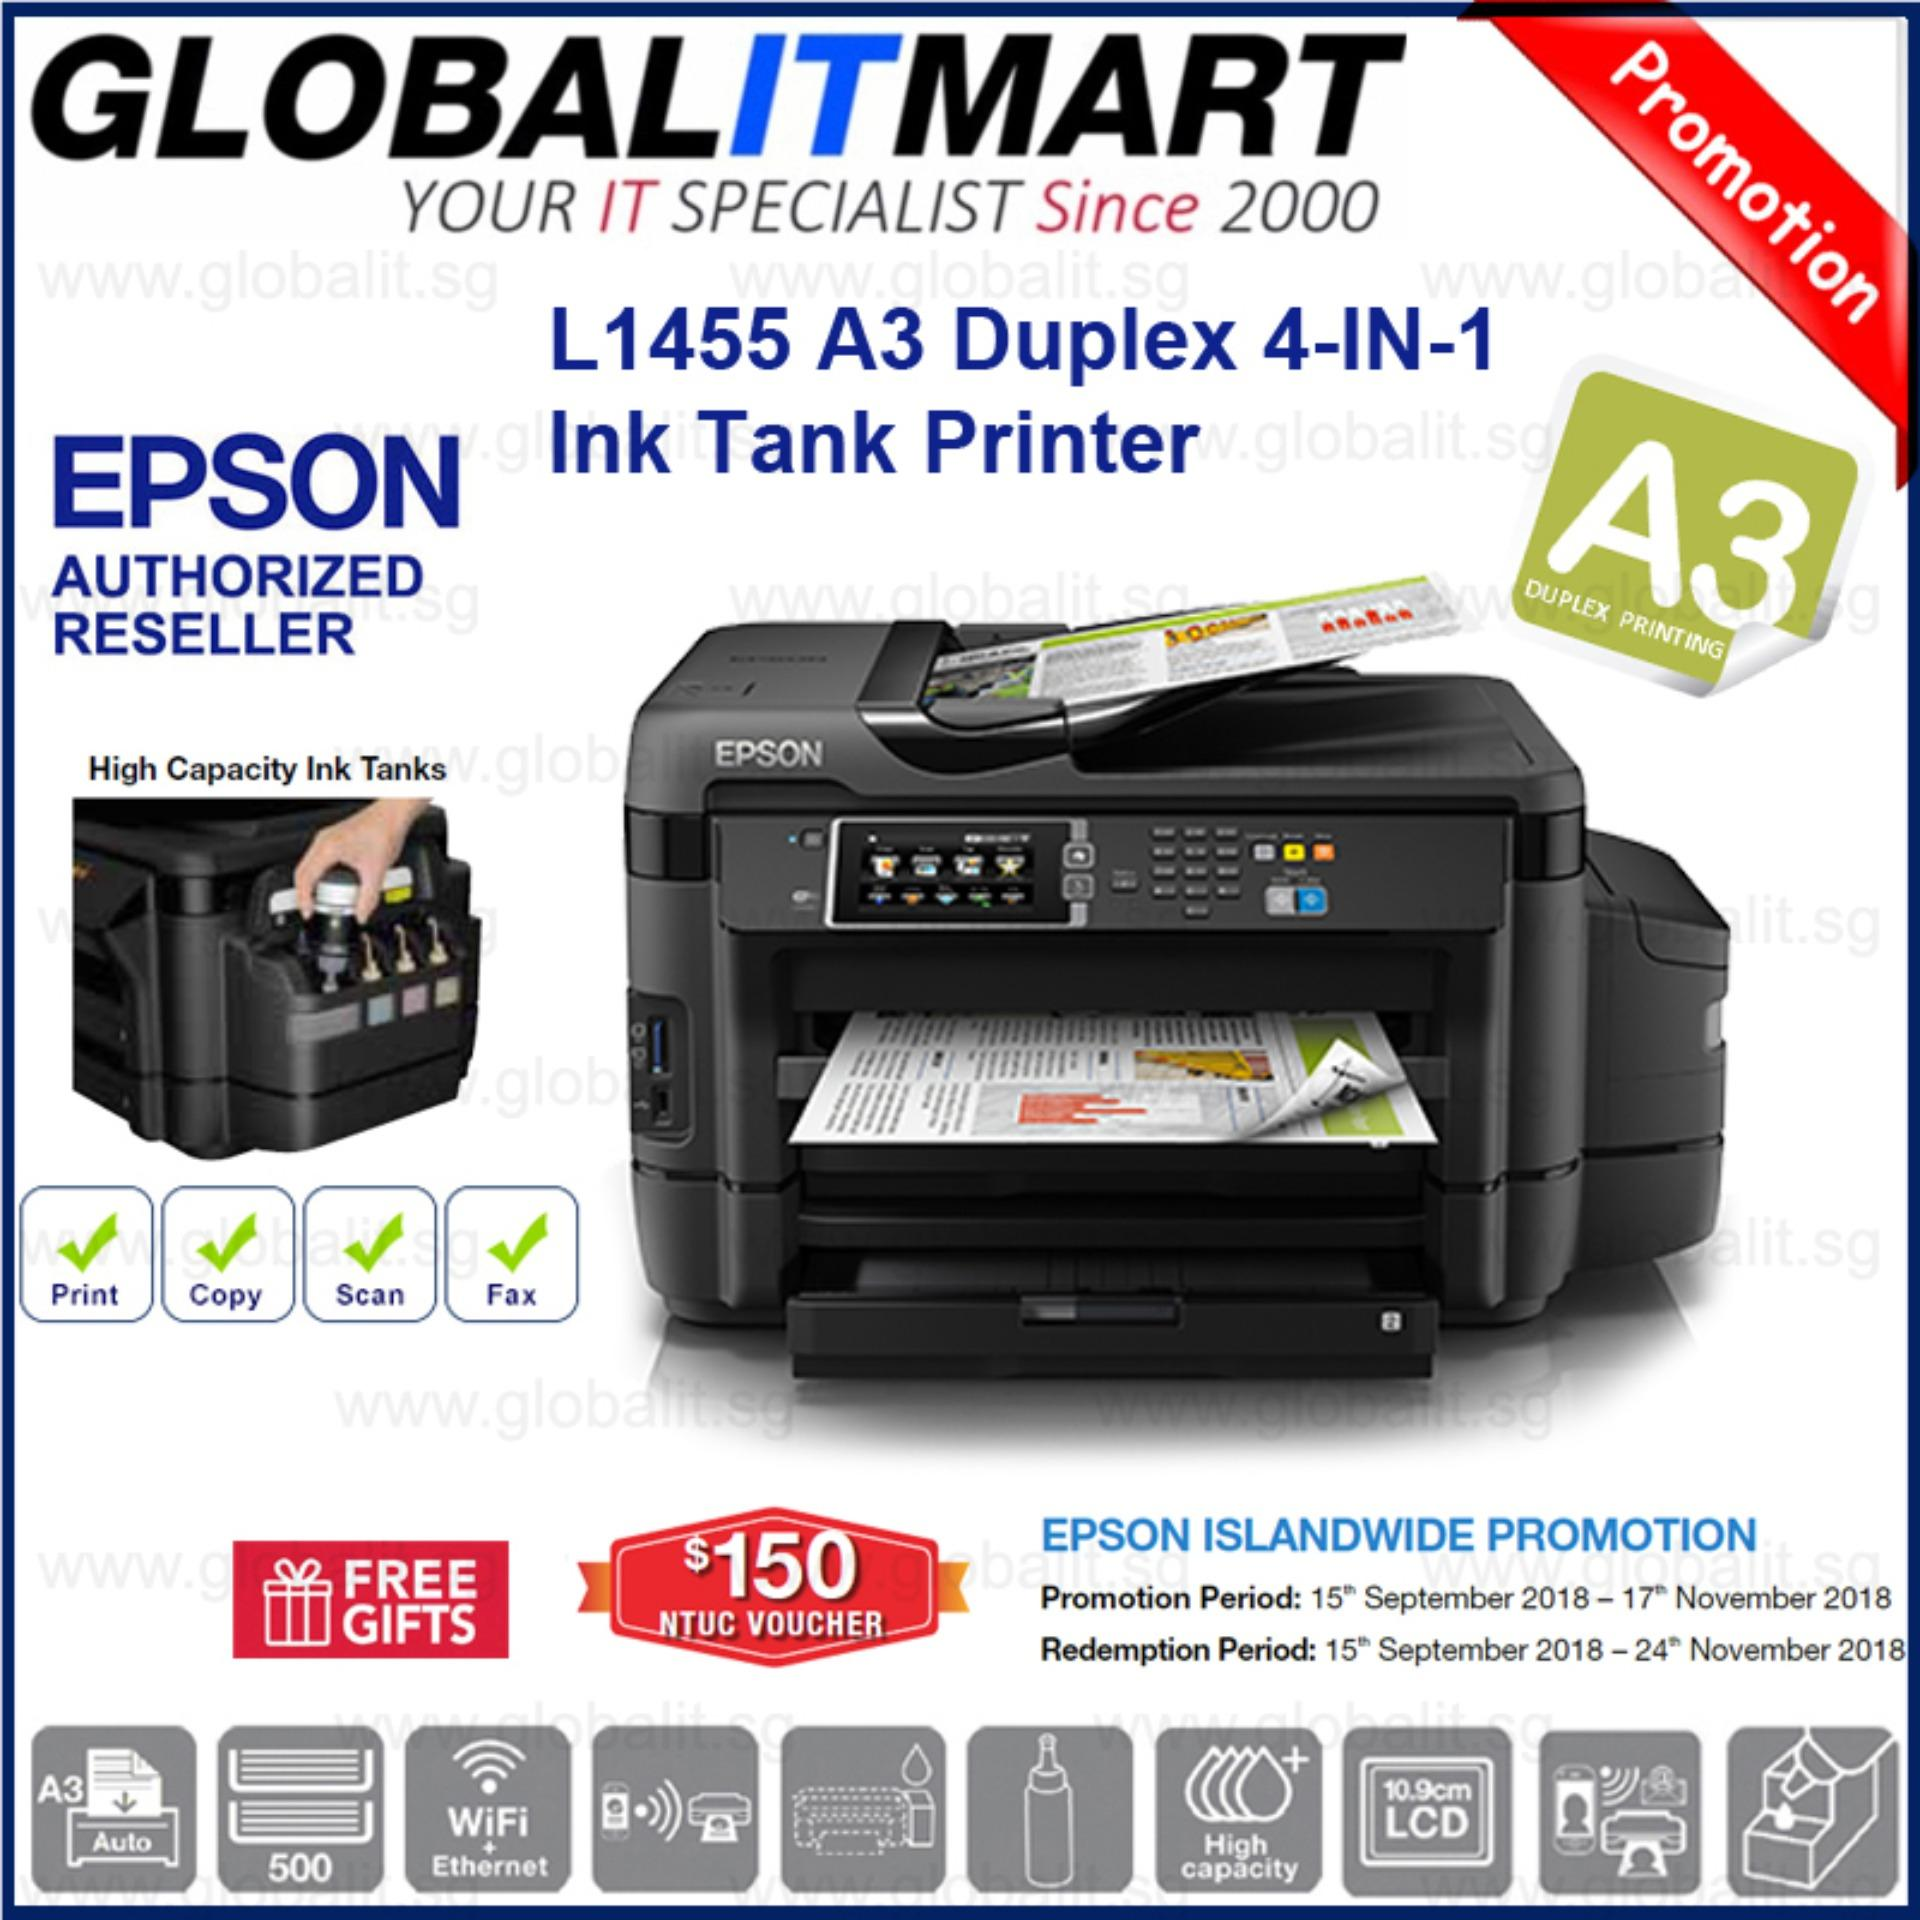 Buy Sell Cheapest Epson Best Quality Product Deals Singapore Store Printer L310 L 310 L1455 A3 Duplex 4 In 1 Ink Tank System